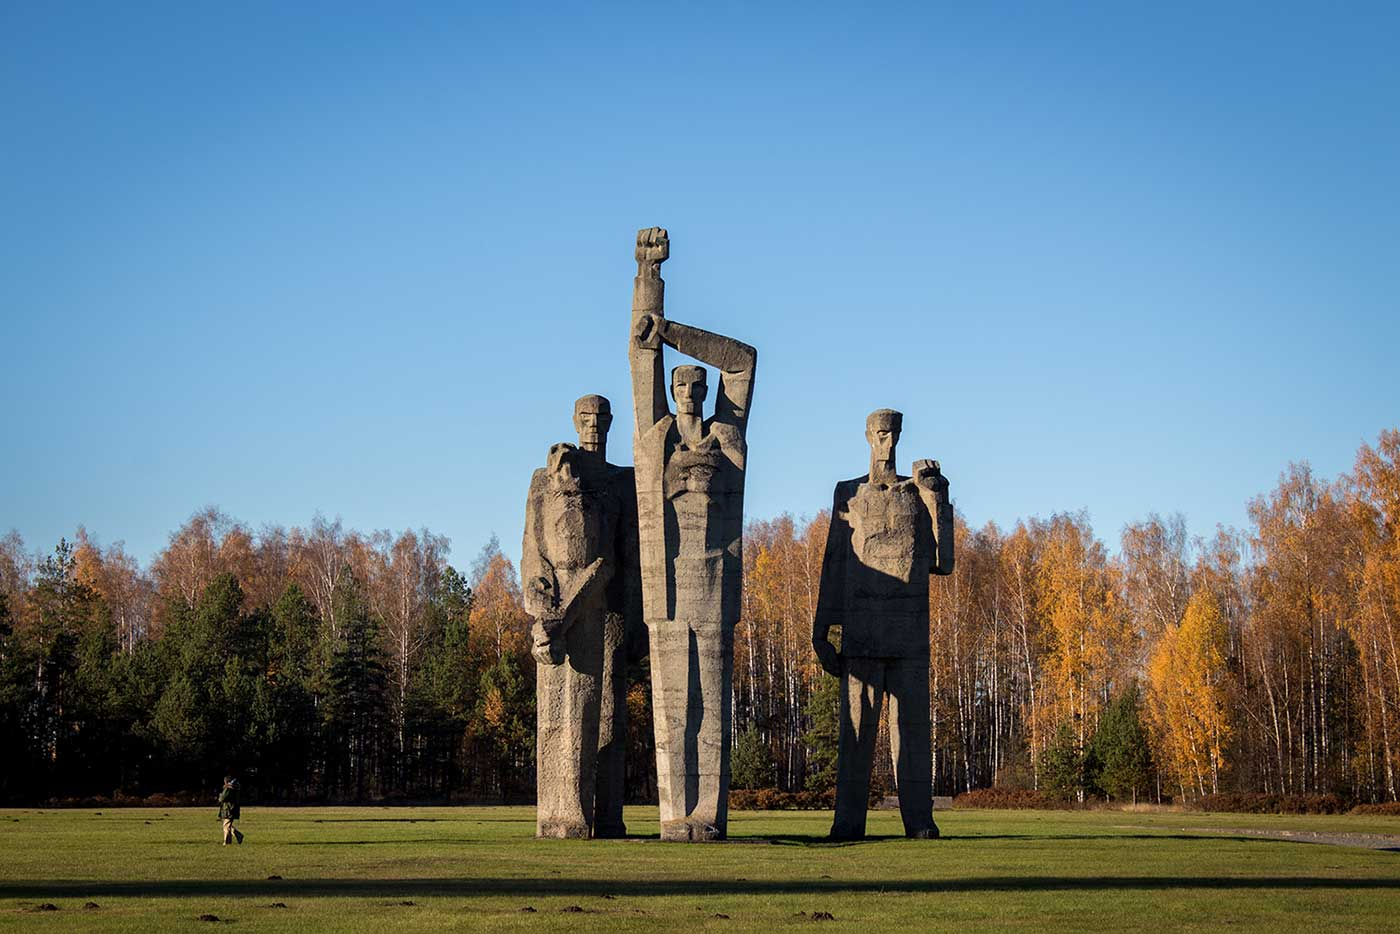 From left to right: 'Solidarity,' 'The Oath' and 'Red Front.' Salaspils Memorial, Latvia.